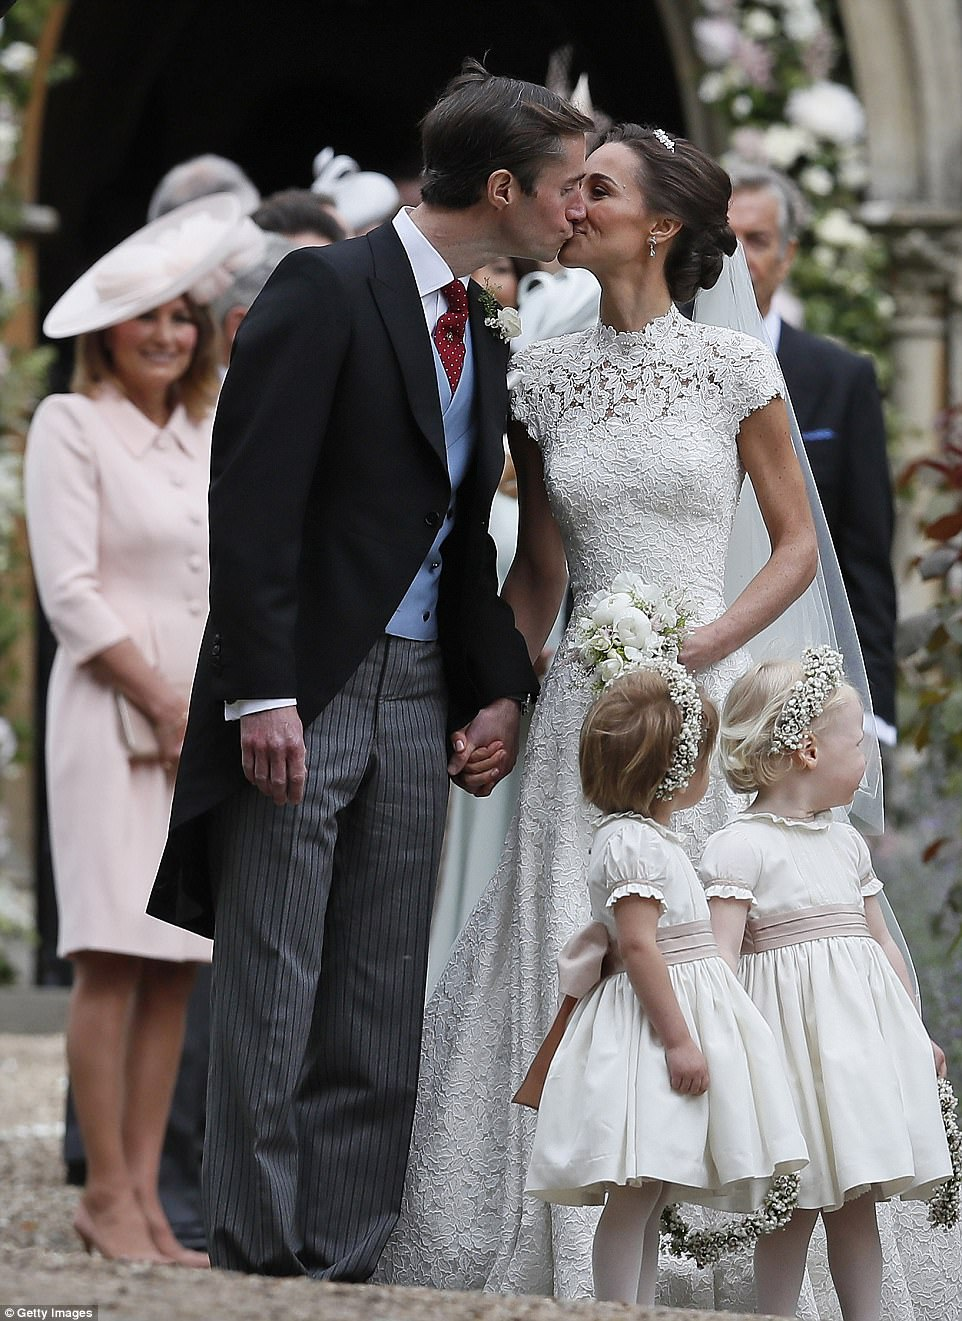 Pippa Middleton and James Matthews kiss after wedding ceremony